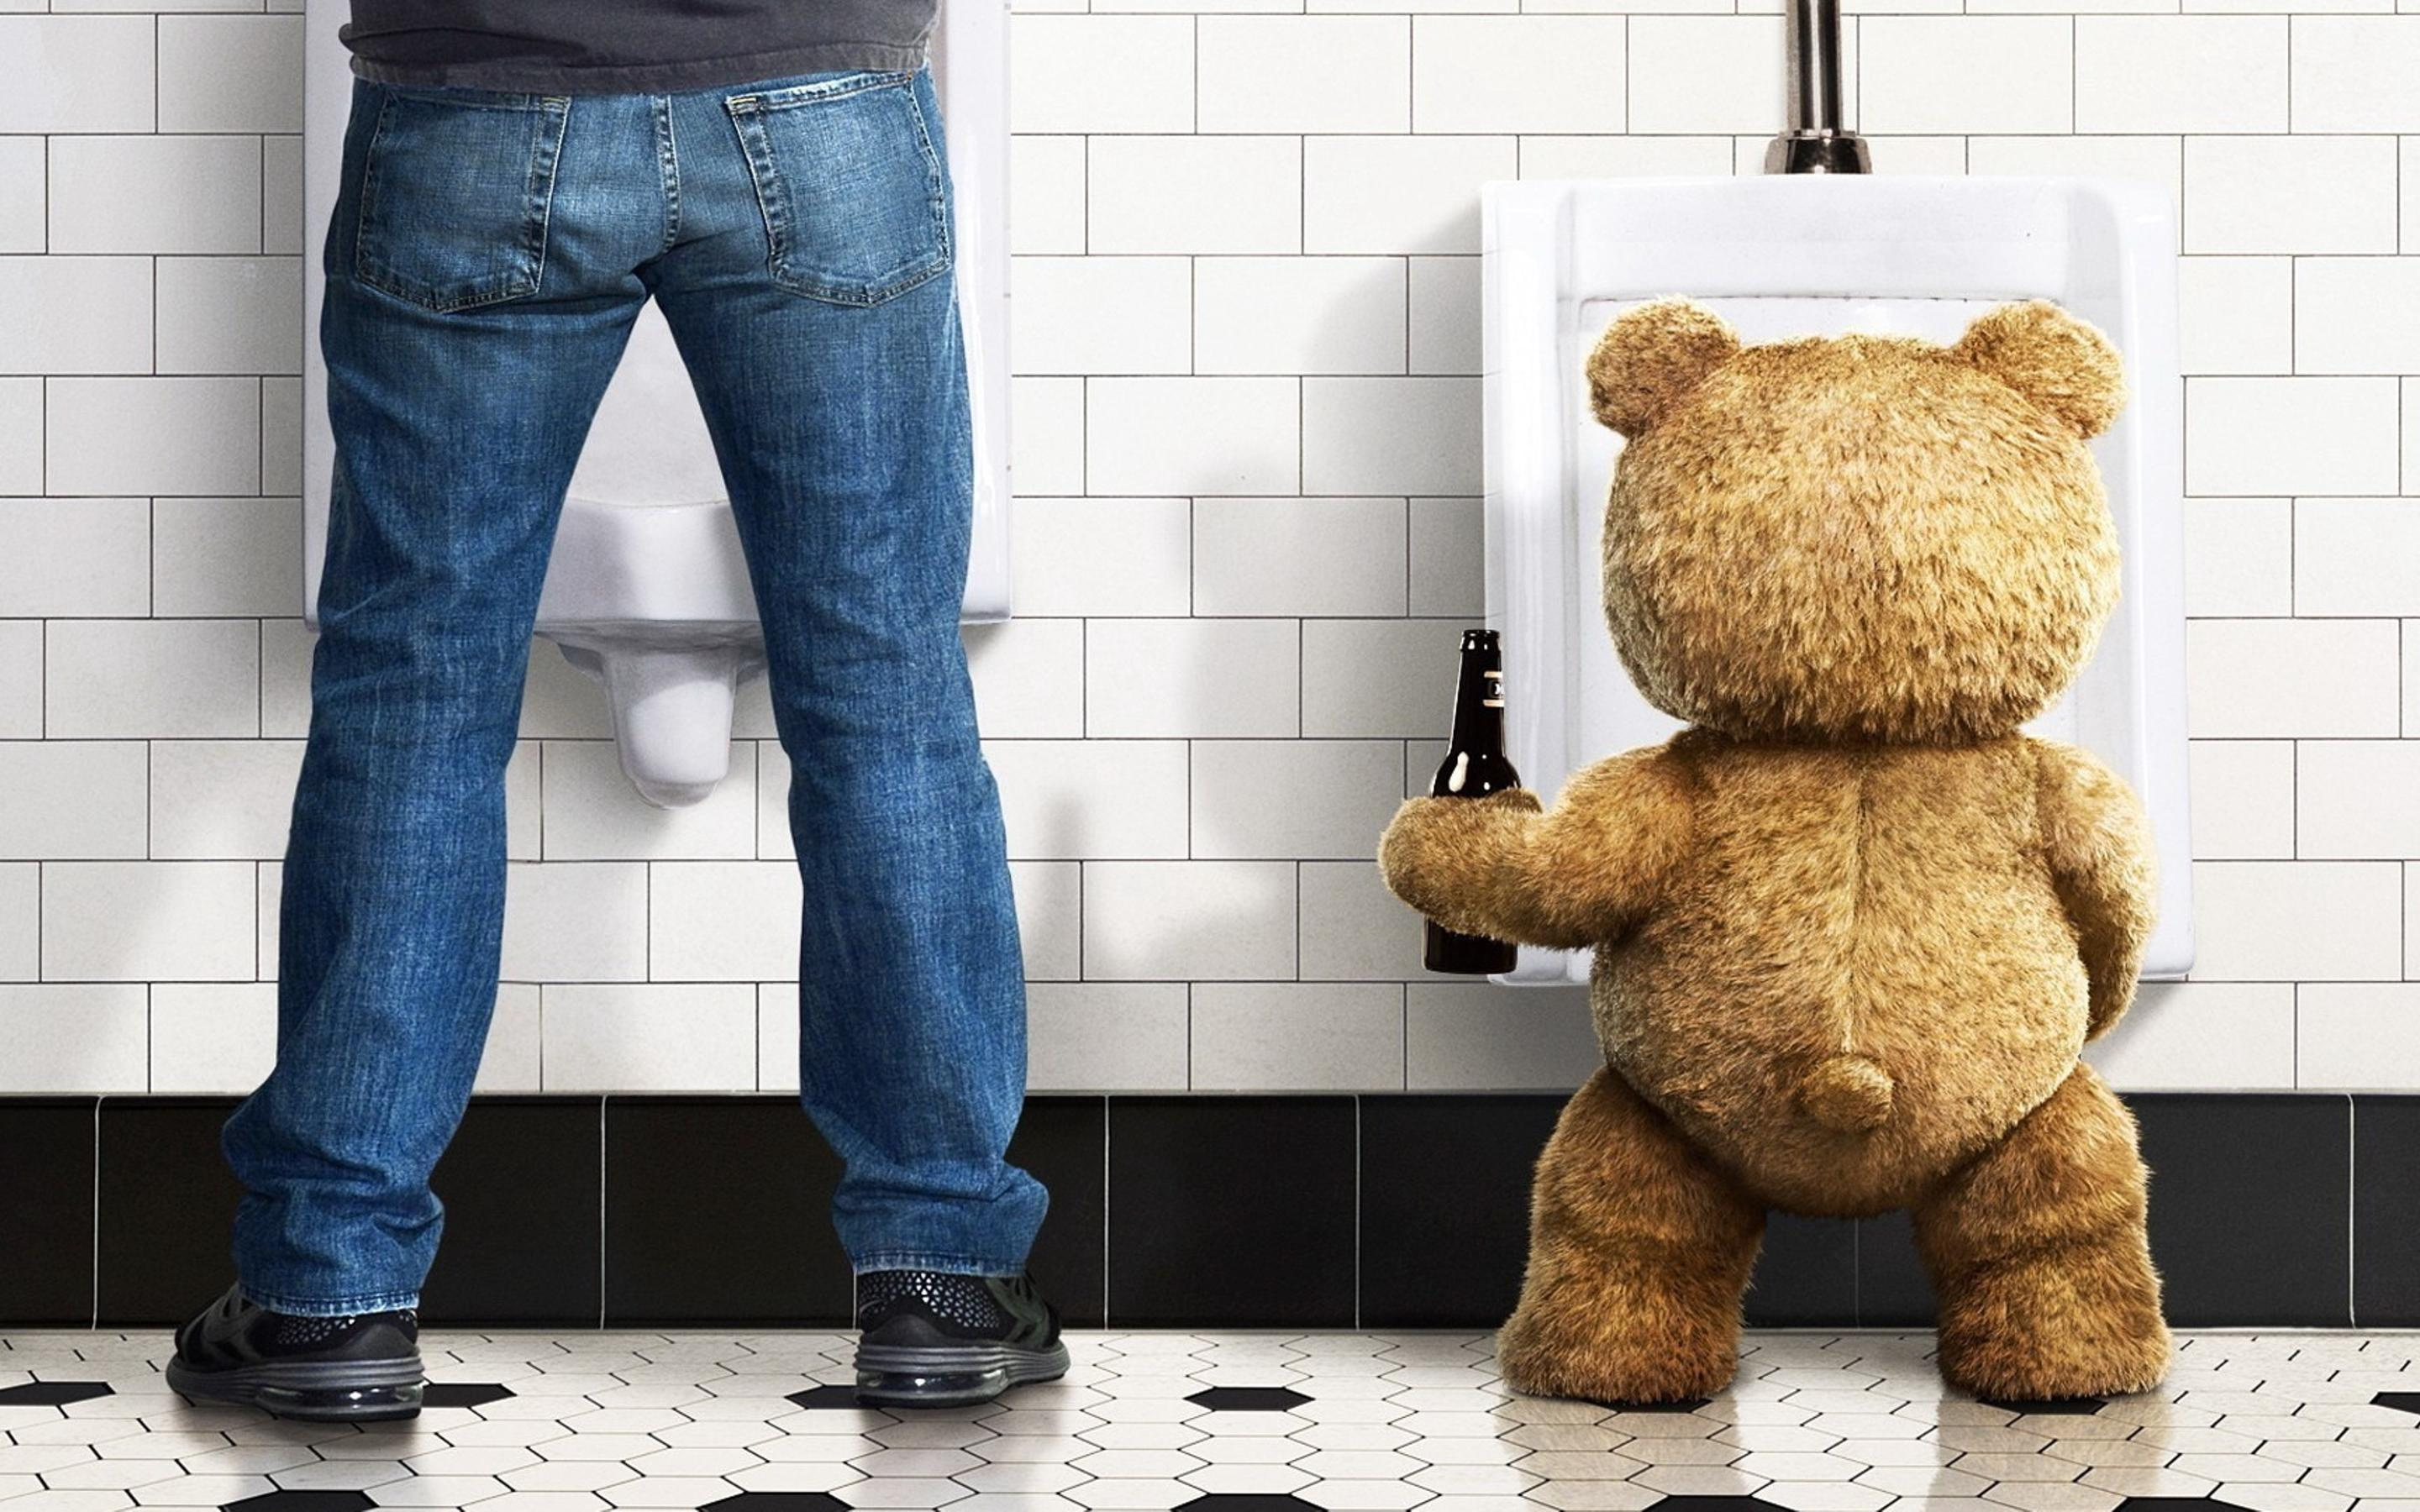 ted bear and his friend in the ted movie wallpaper download 2880x1800